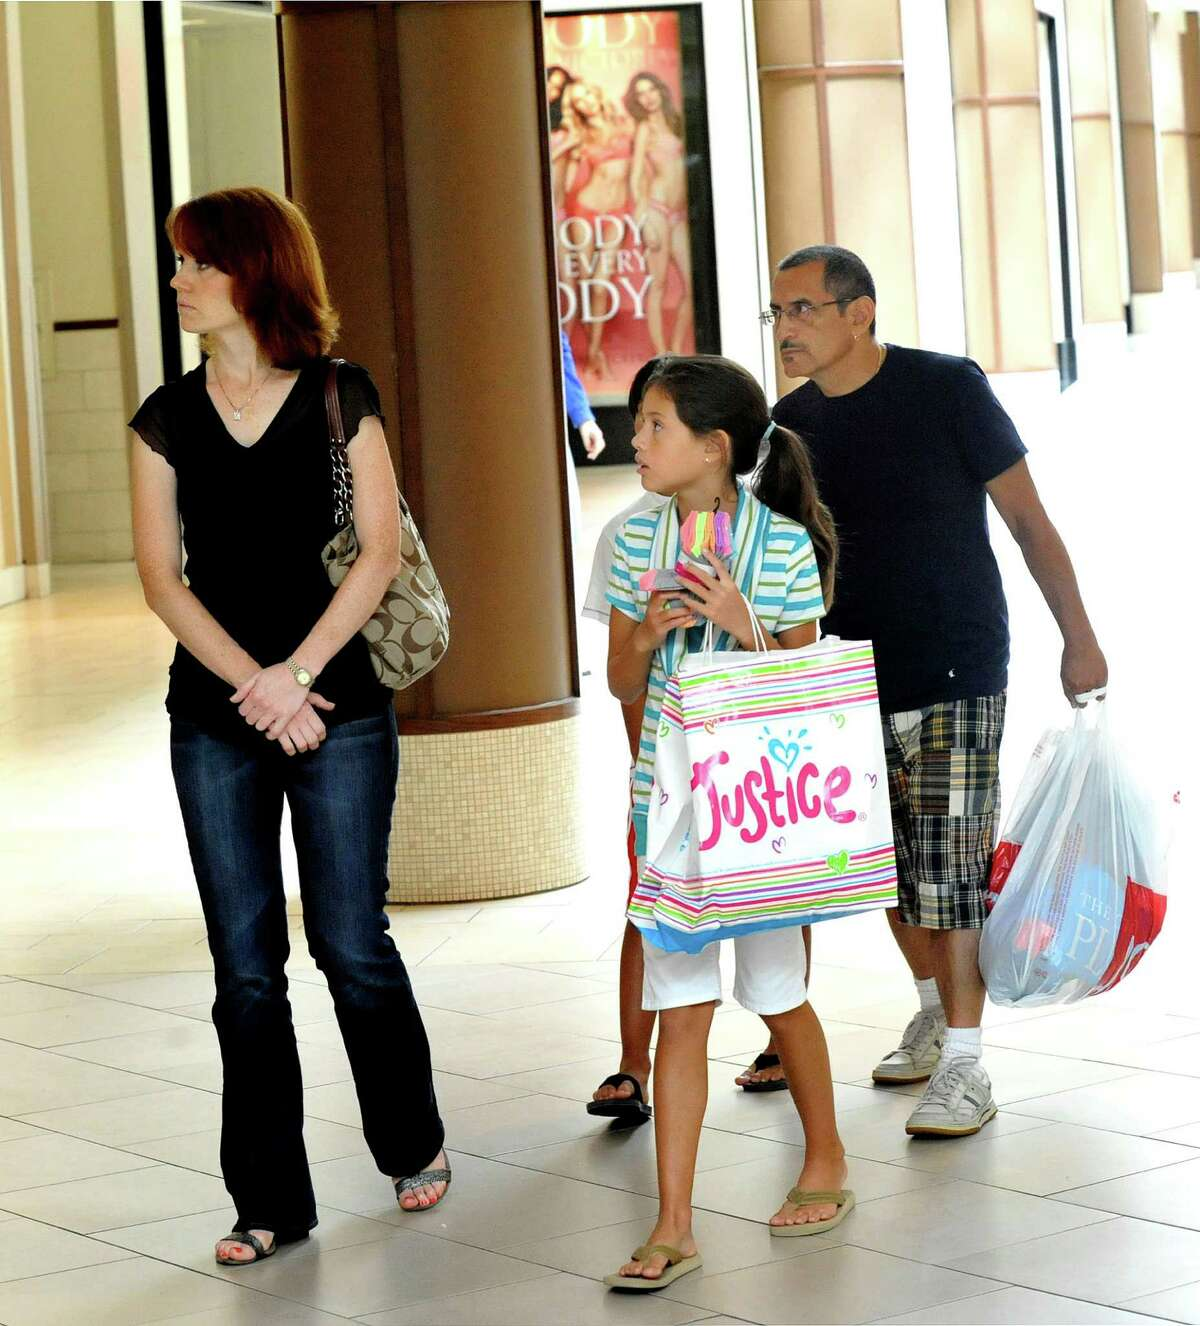 Area residents shop for back-to-school cloths at the Danbury Fair mall on the first day of tax-free week Sunday, Aug. 19, 2012.